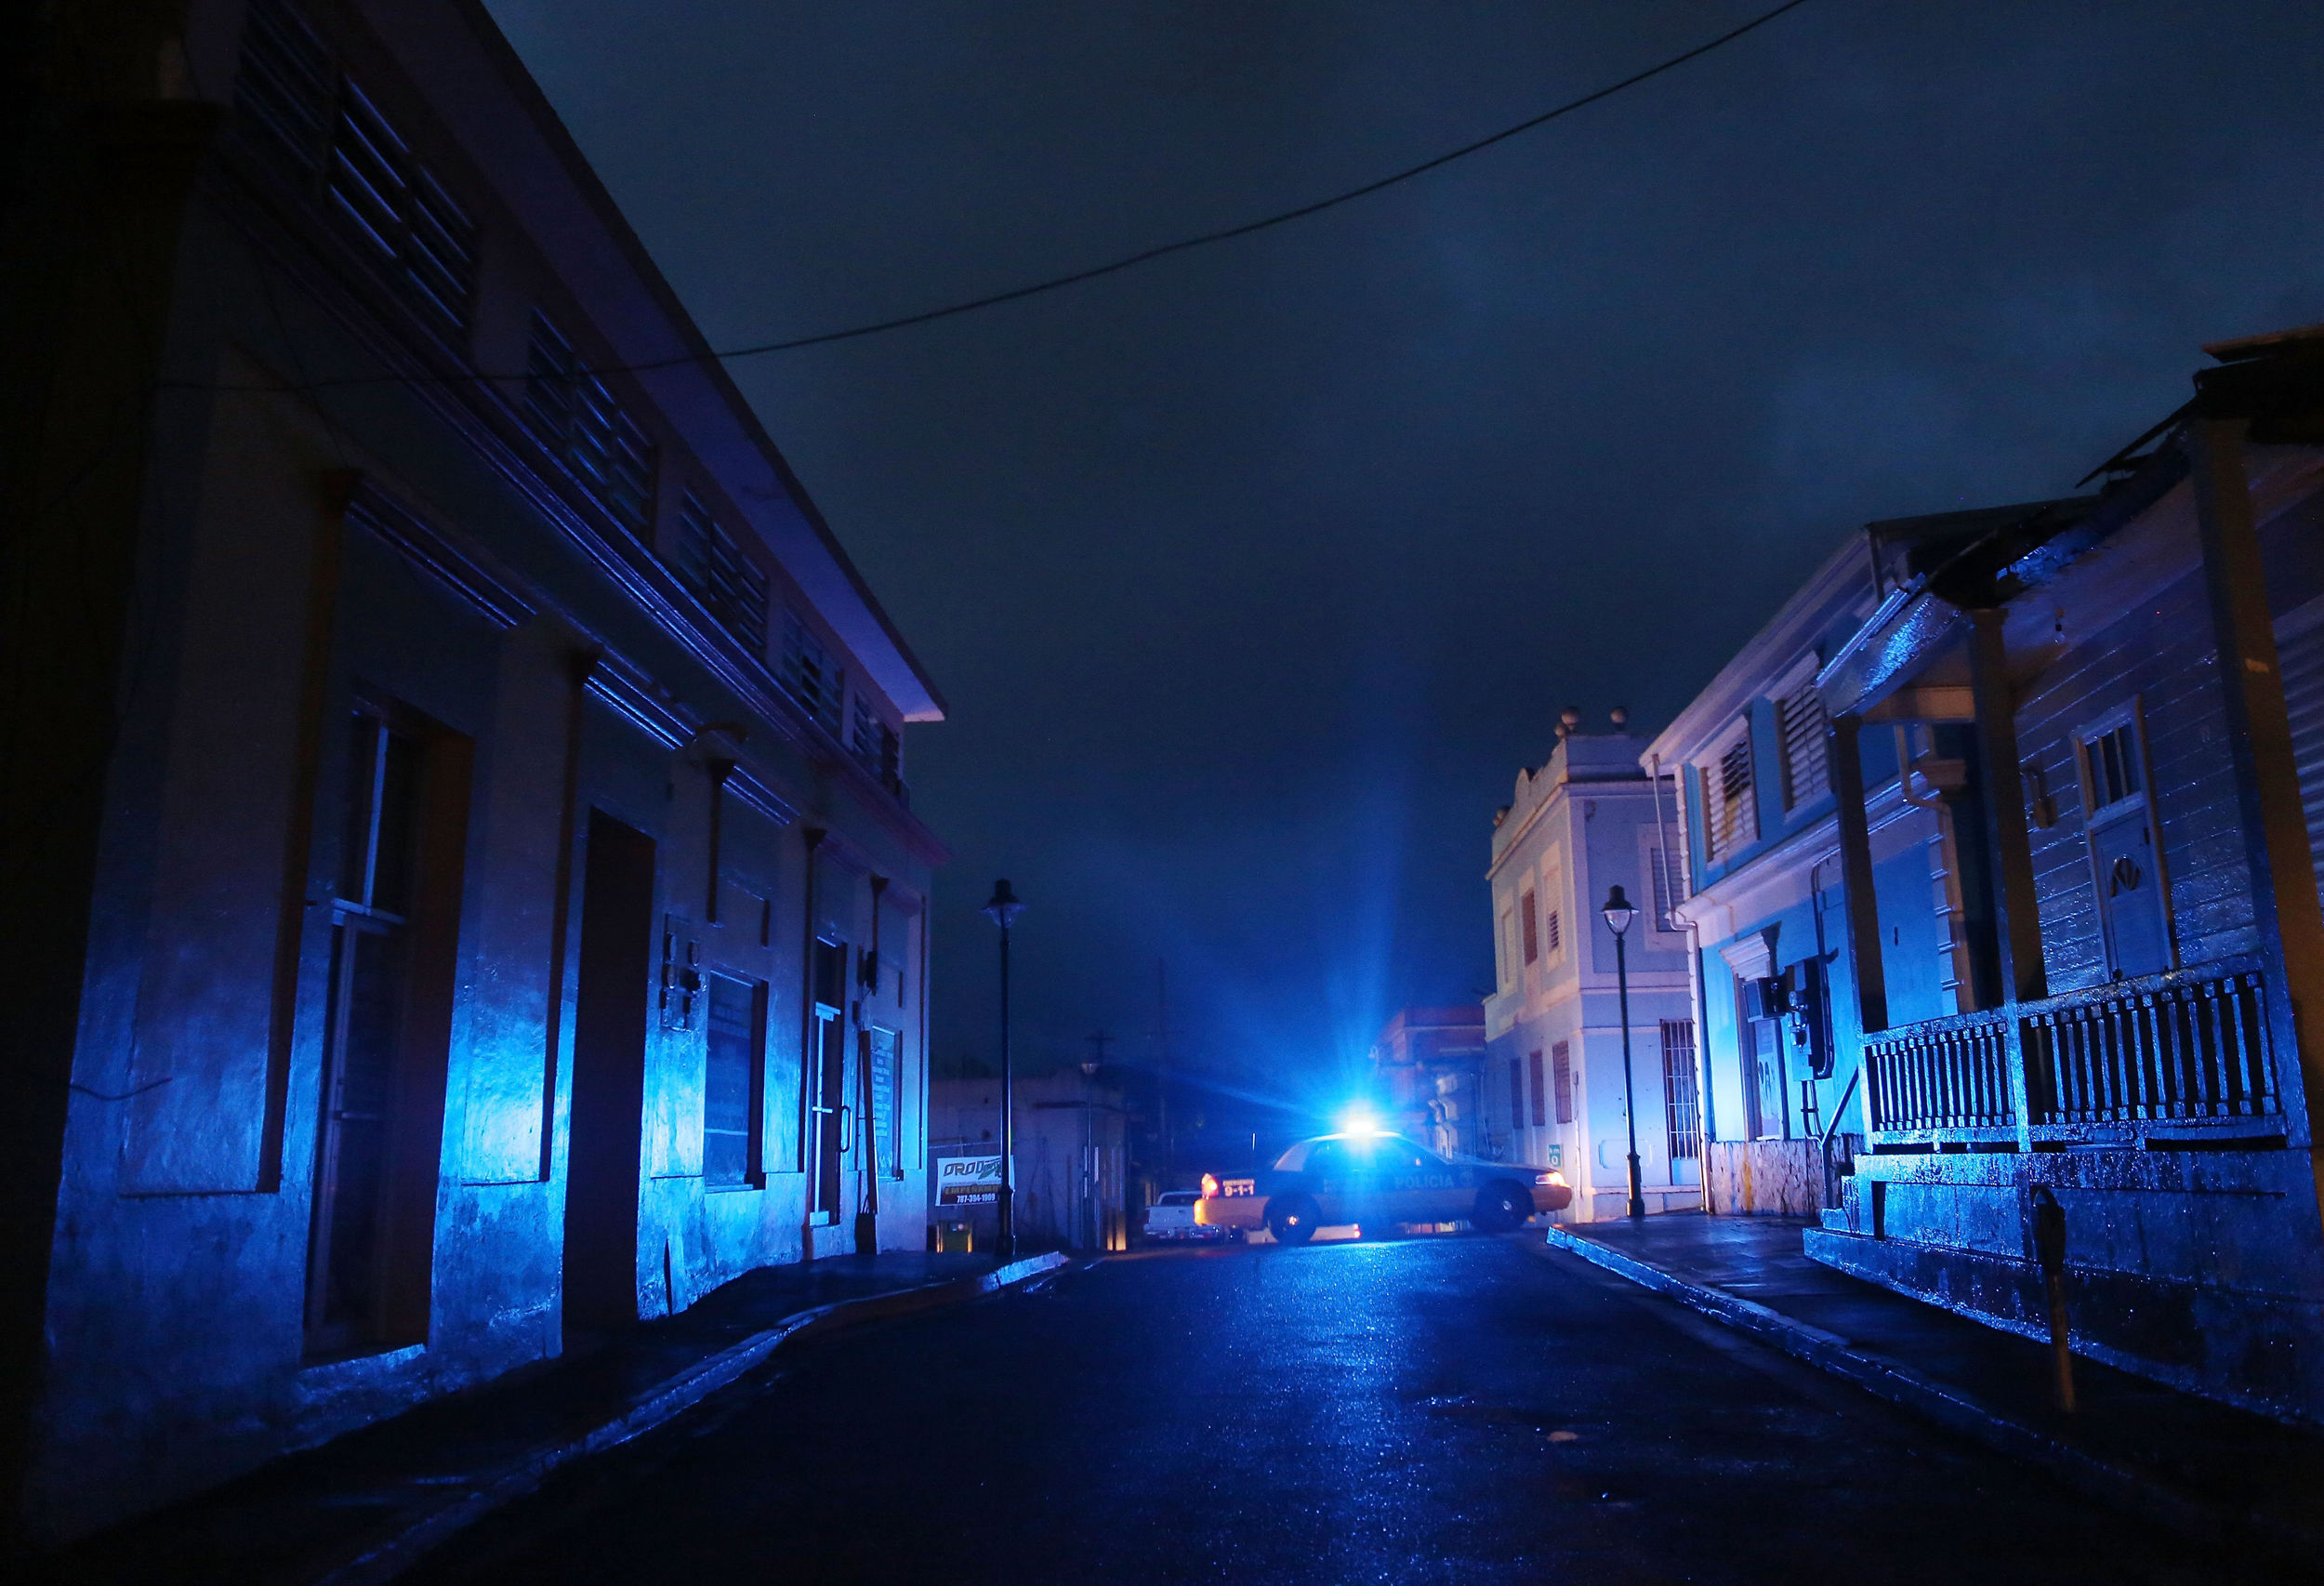 Image: A police car patrols on a darkened street